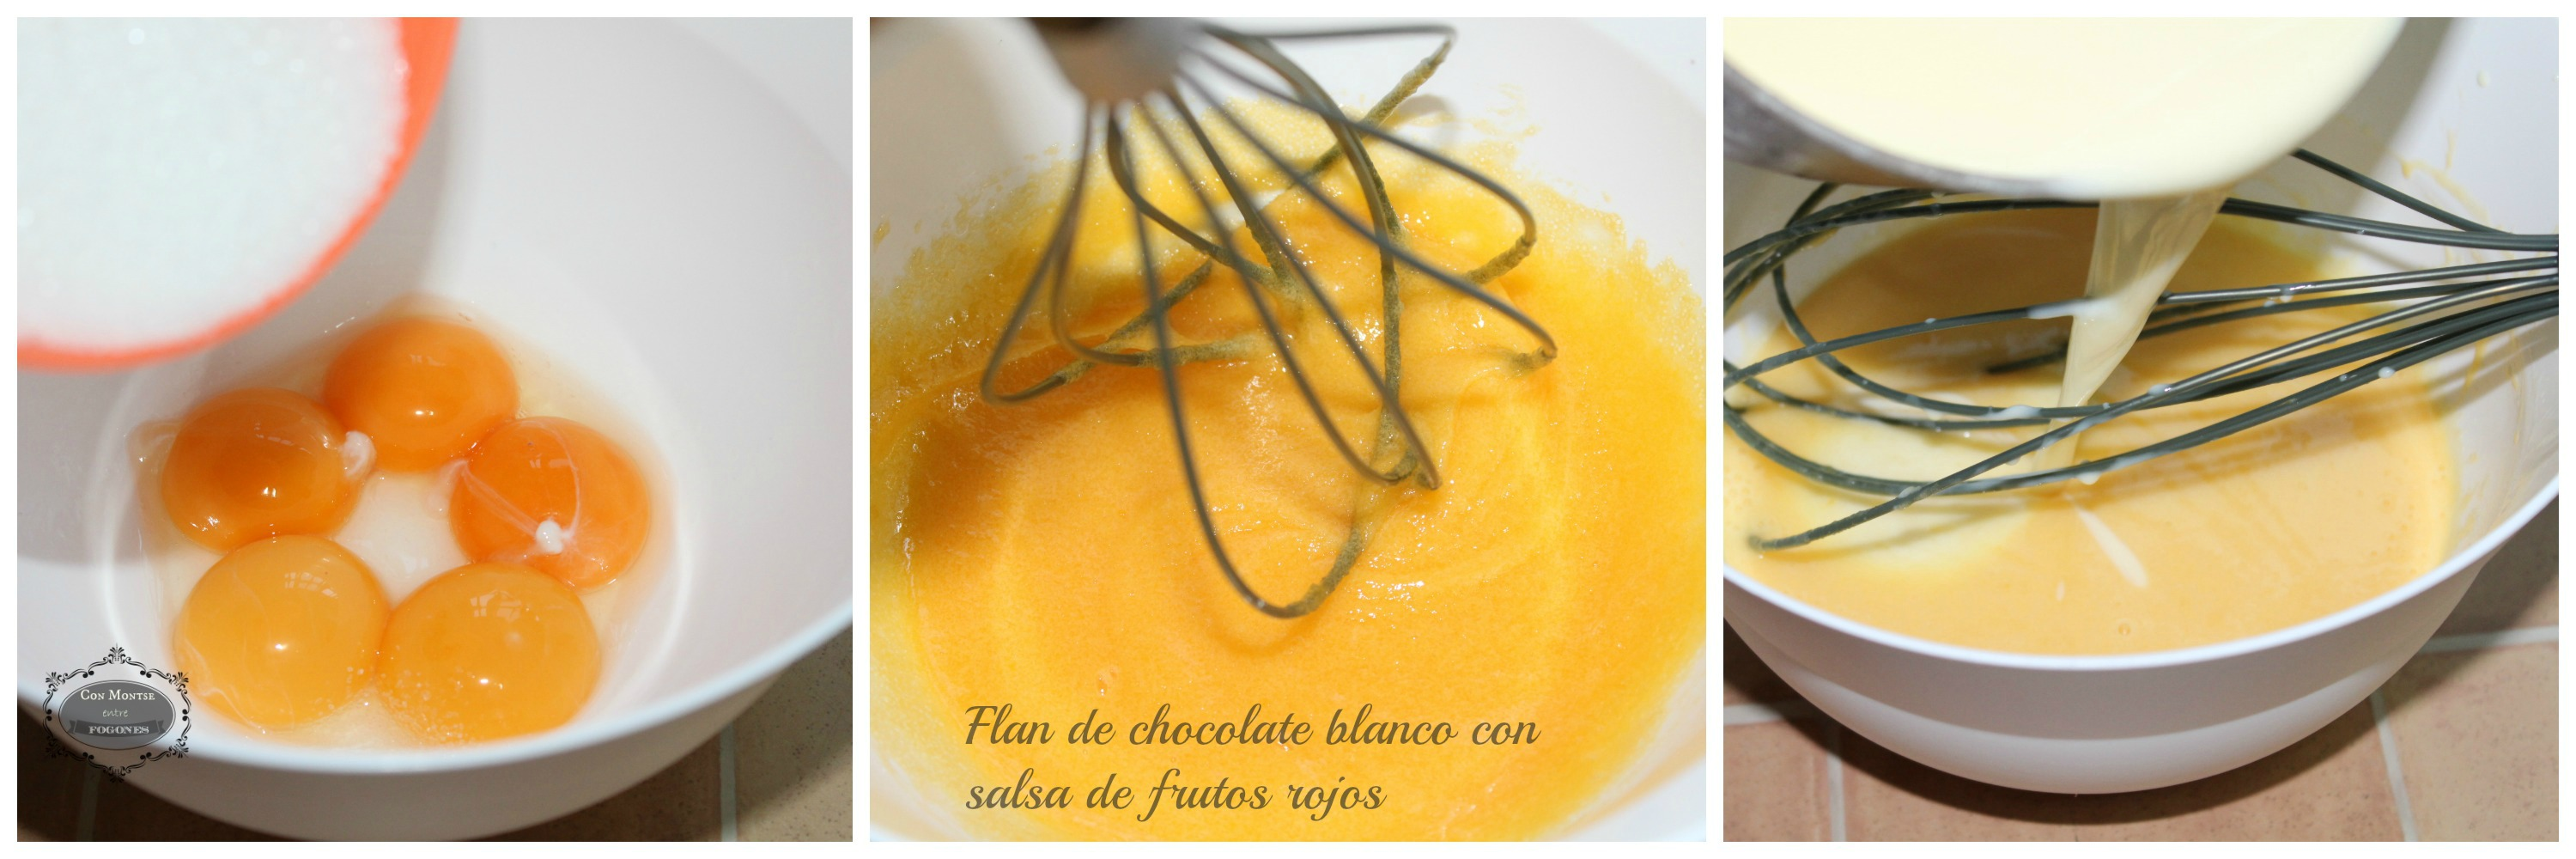 Flan de chocolate blanco 2